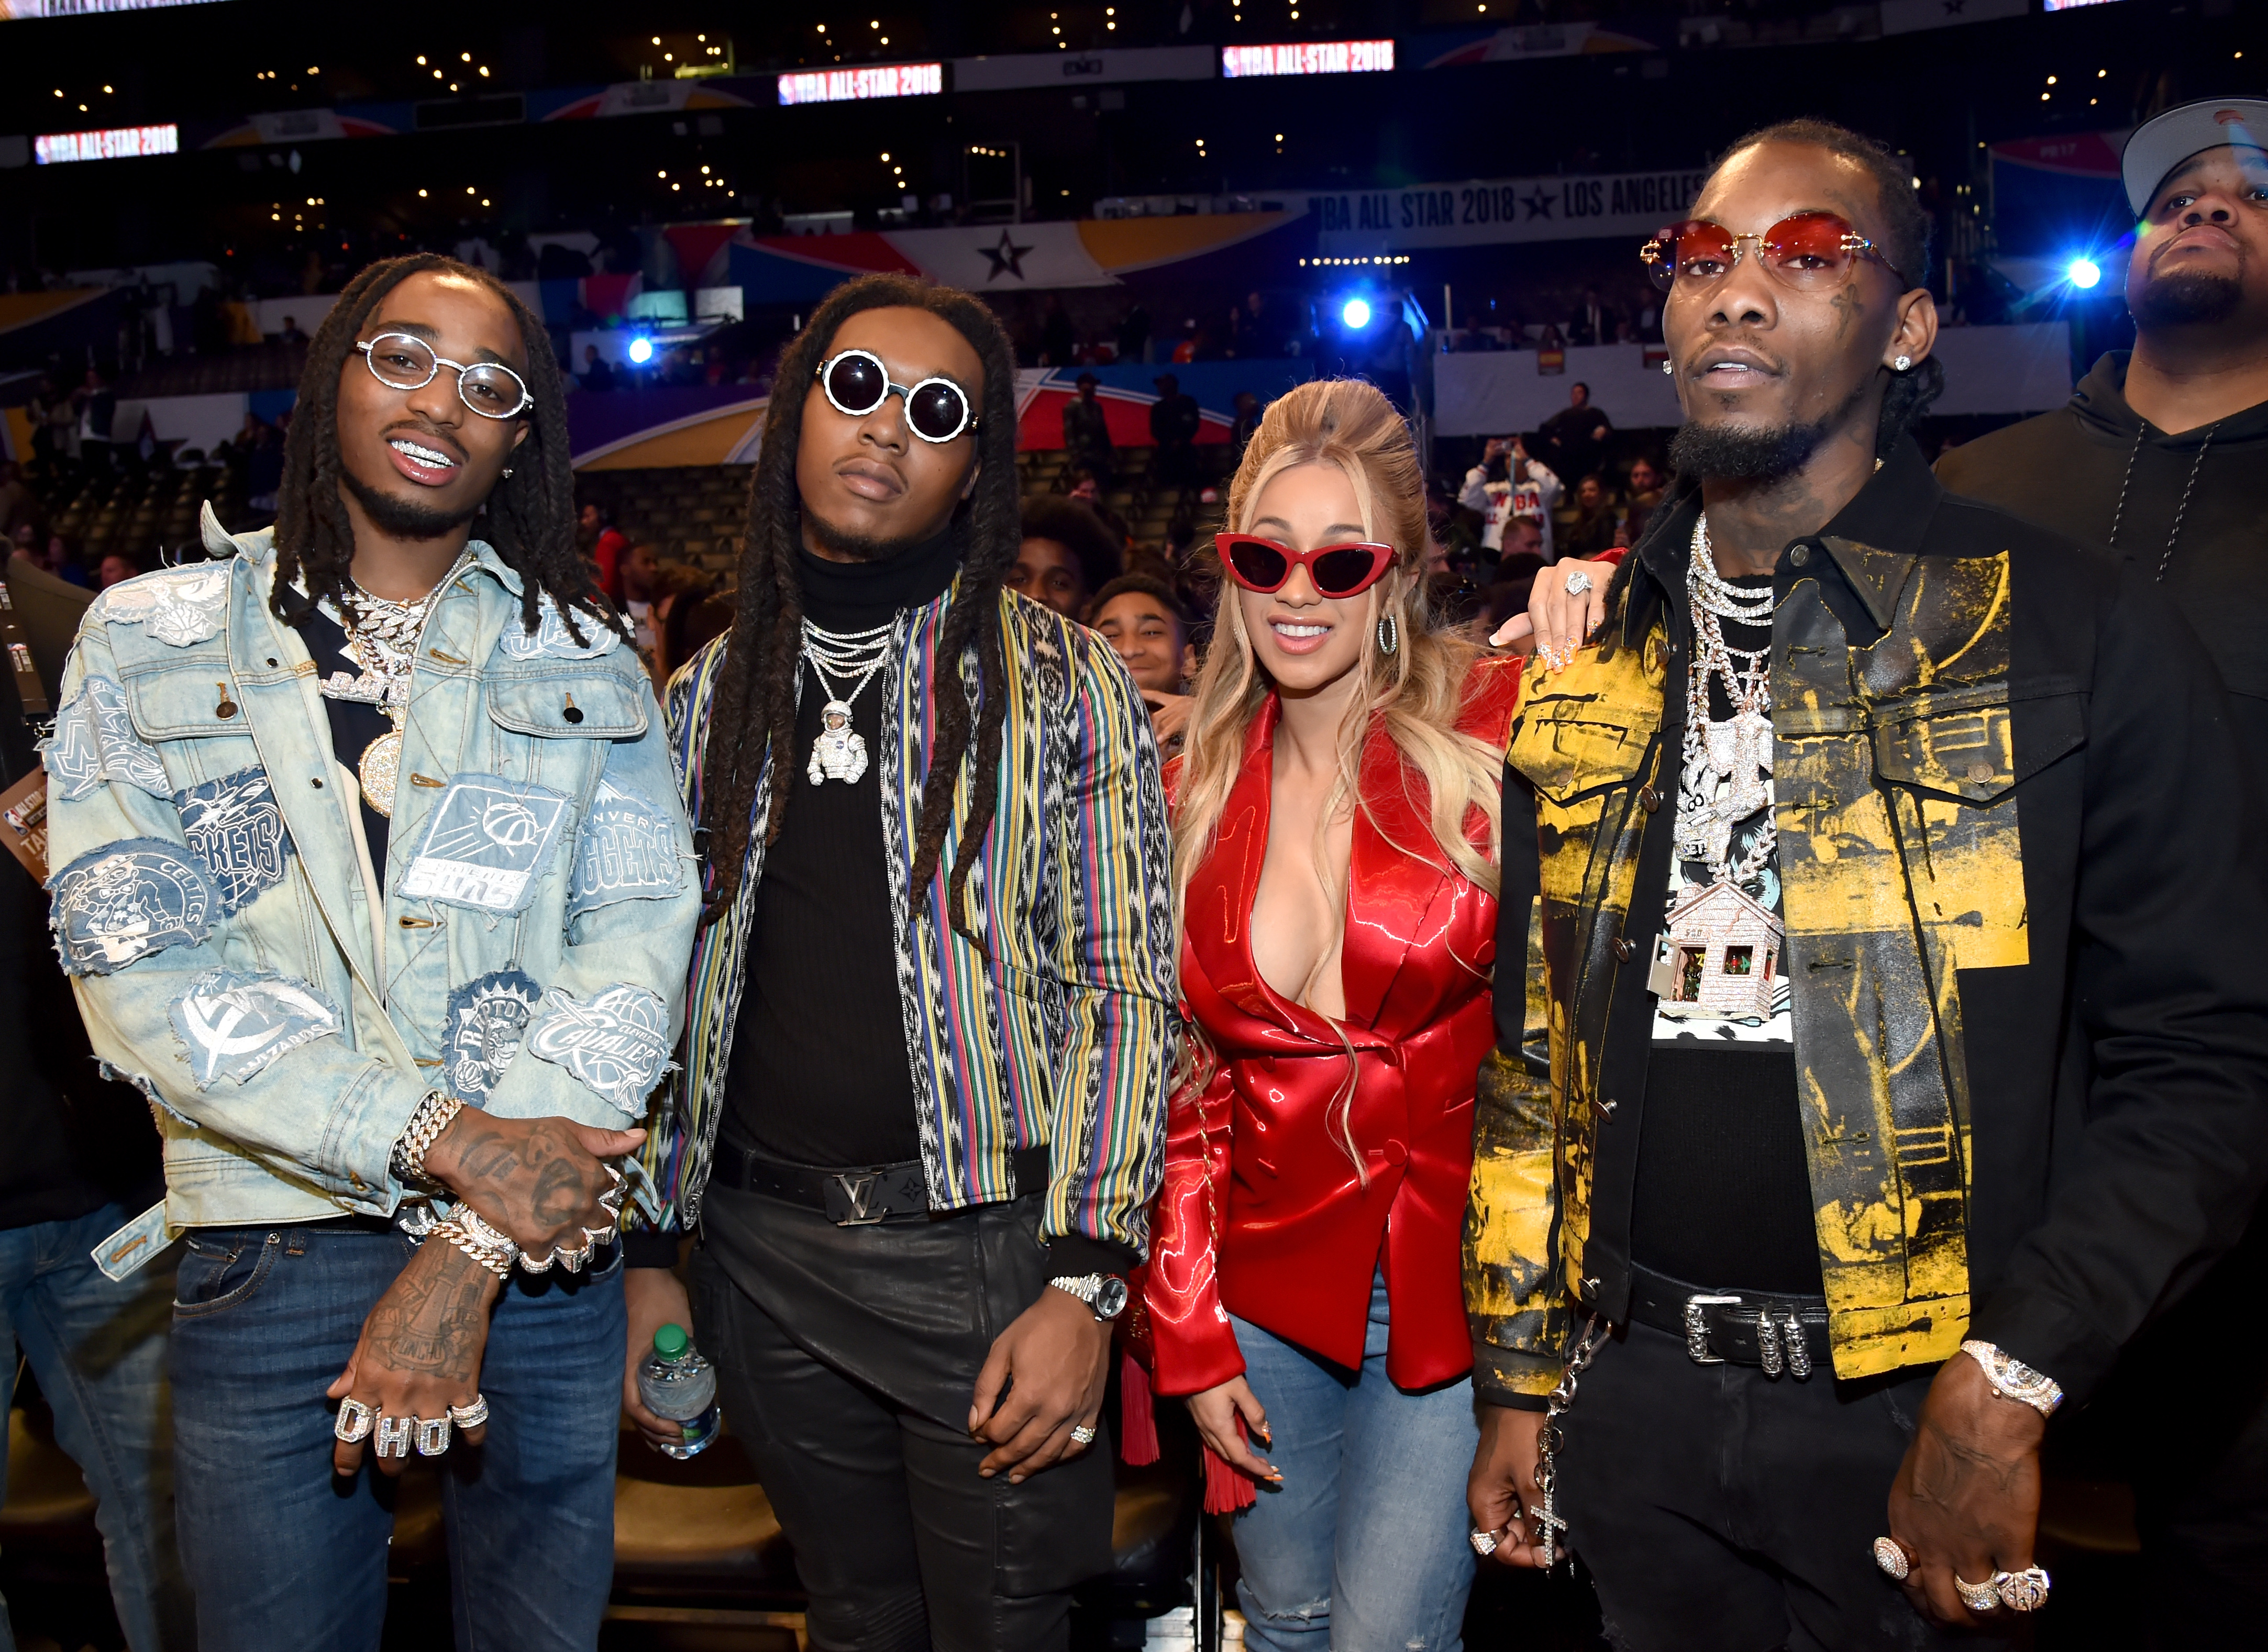 Quavo and Takeoff of Migos, Cardi B, and Offset of Migos attend the 67th NBA All-Star Game: Team LeBron Vs. Team Stephen at Staples Center on February 18, 2018 in Los Angeles